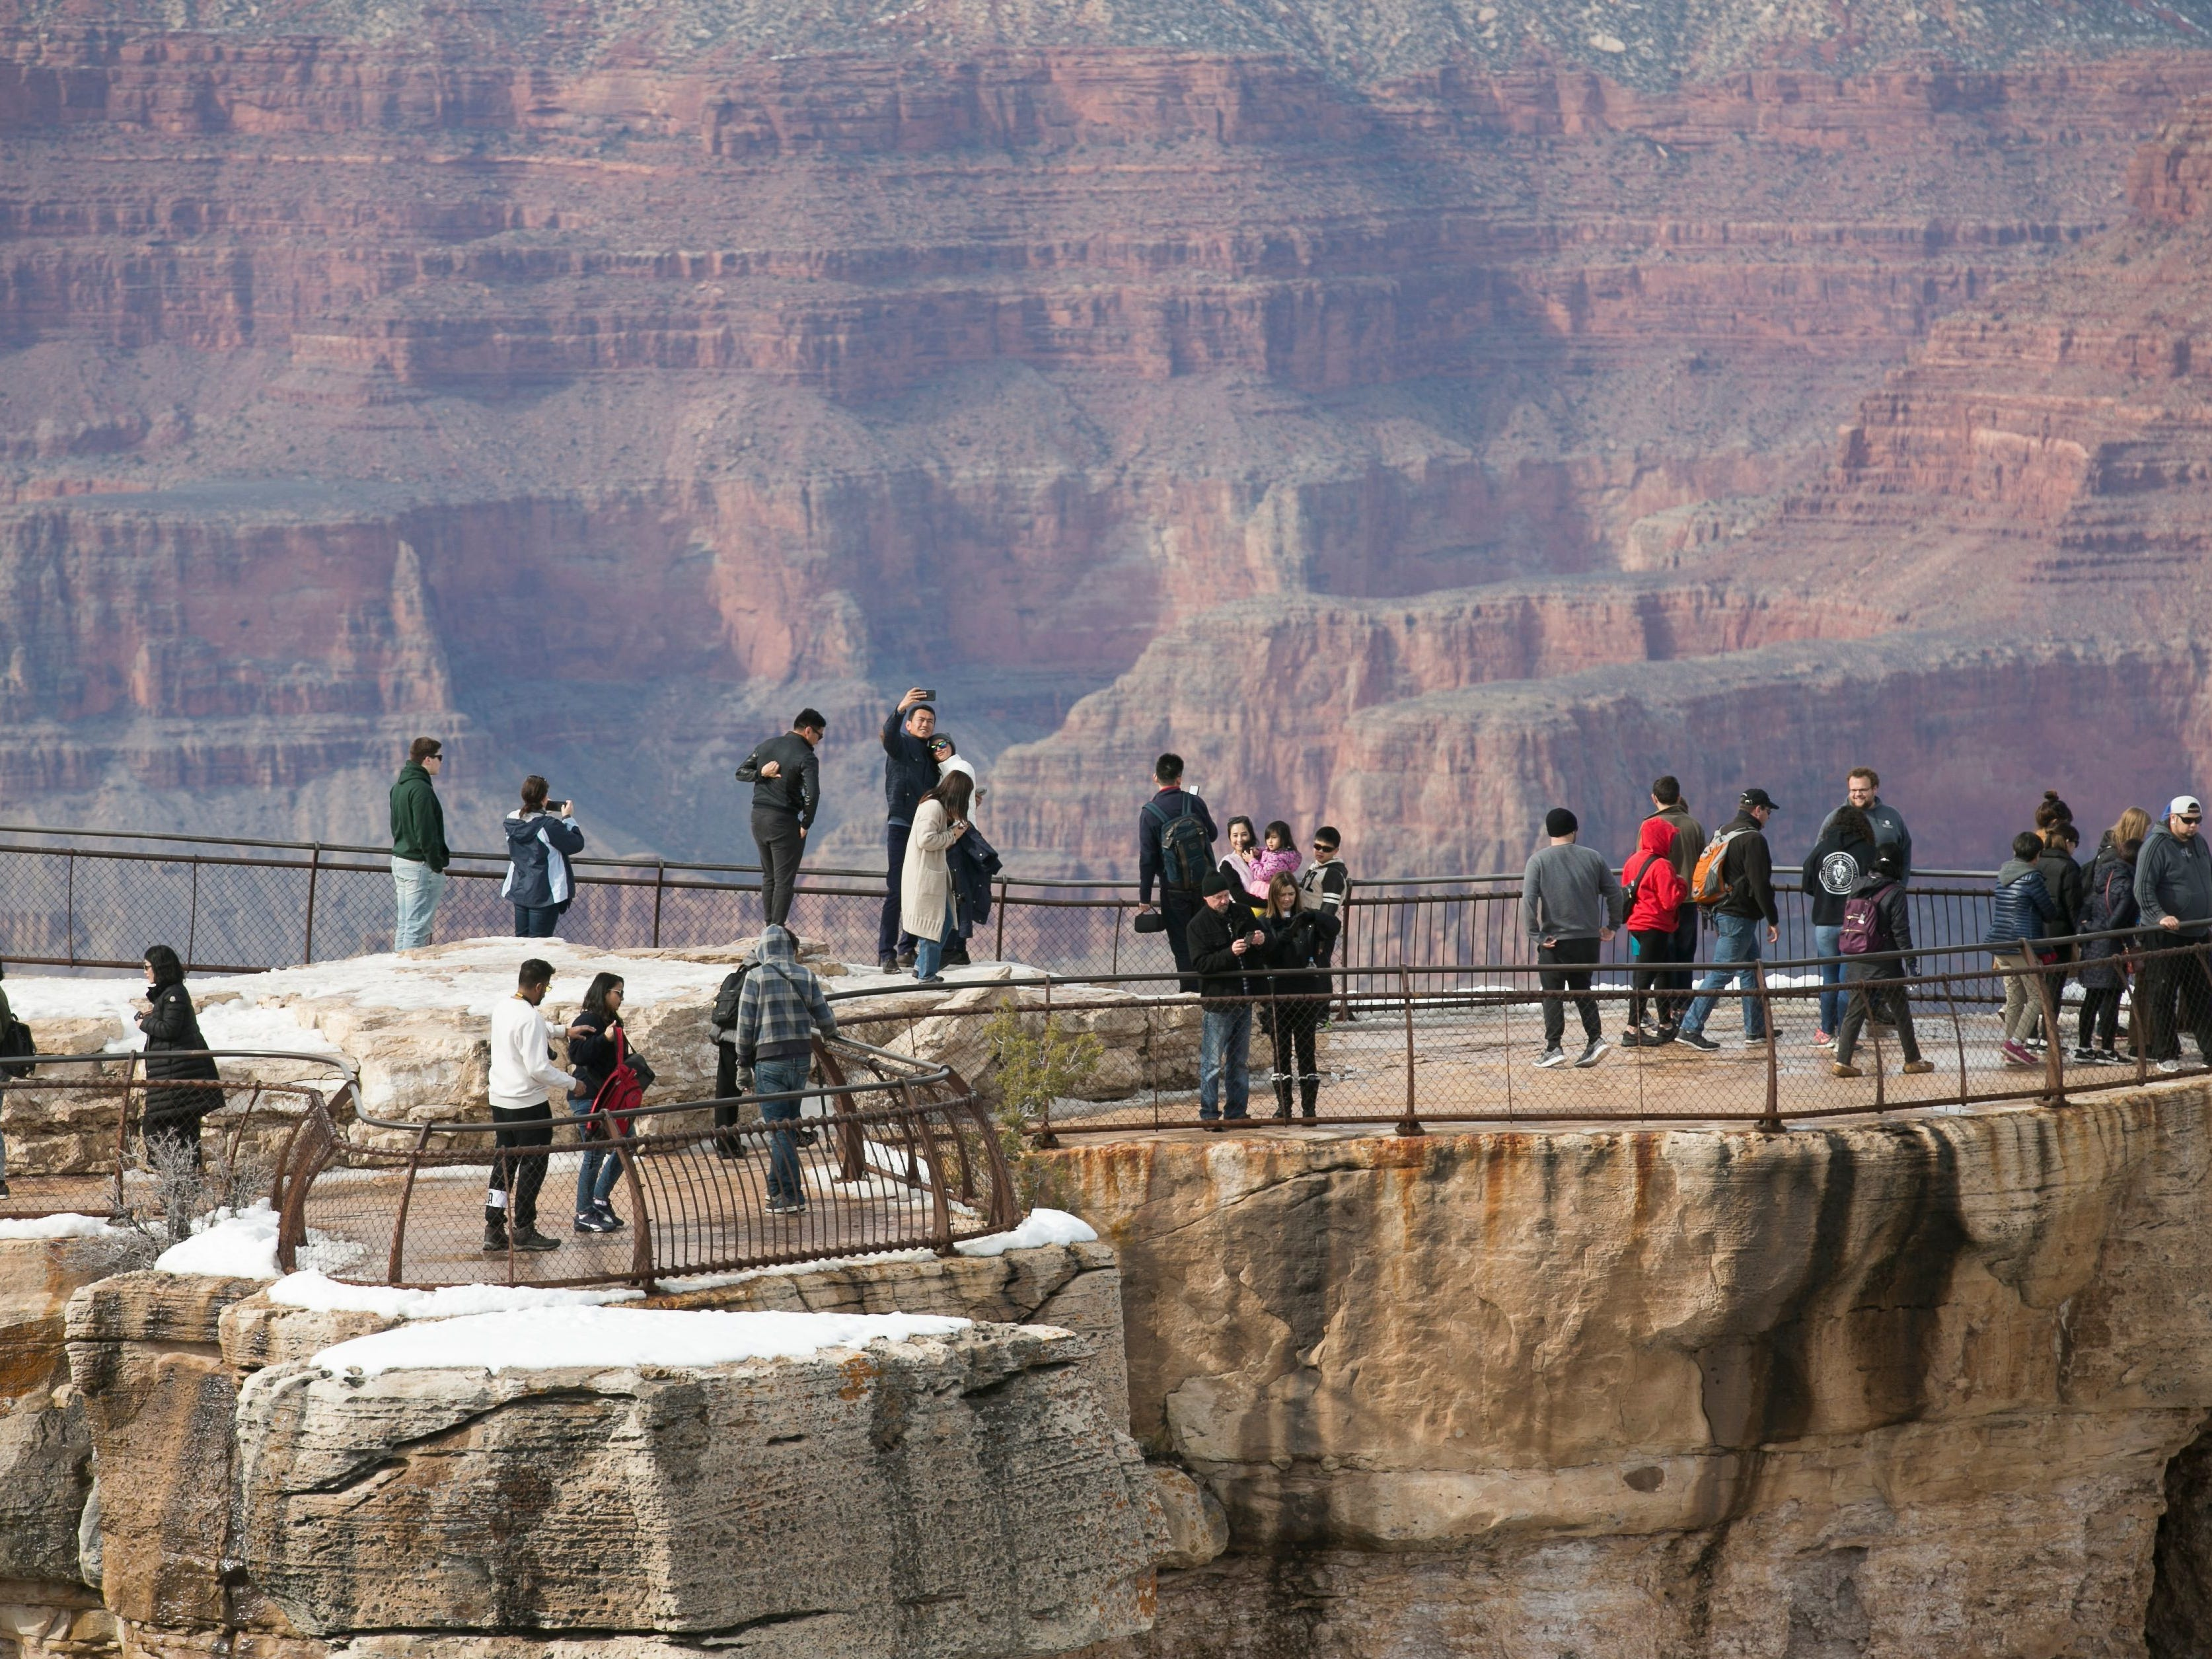 Railings and fences define the edges of the rim at Grand Canyon National Park, but some visitors push the boundaries to explore further.